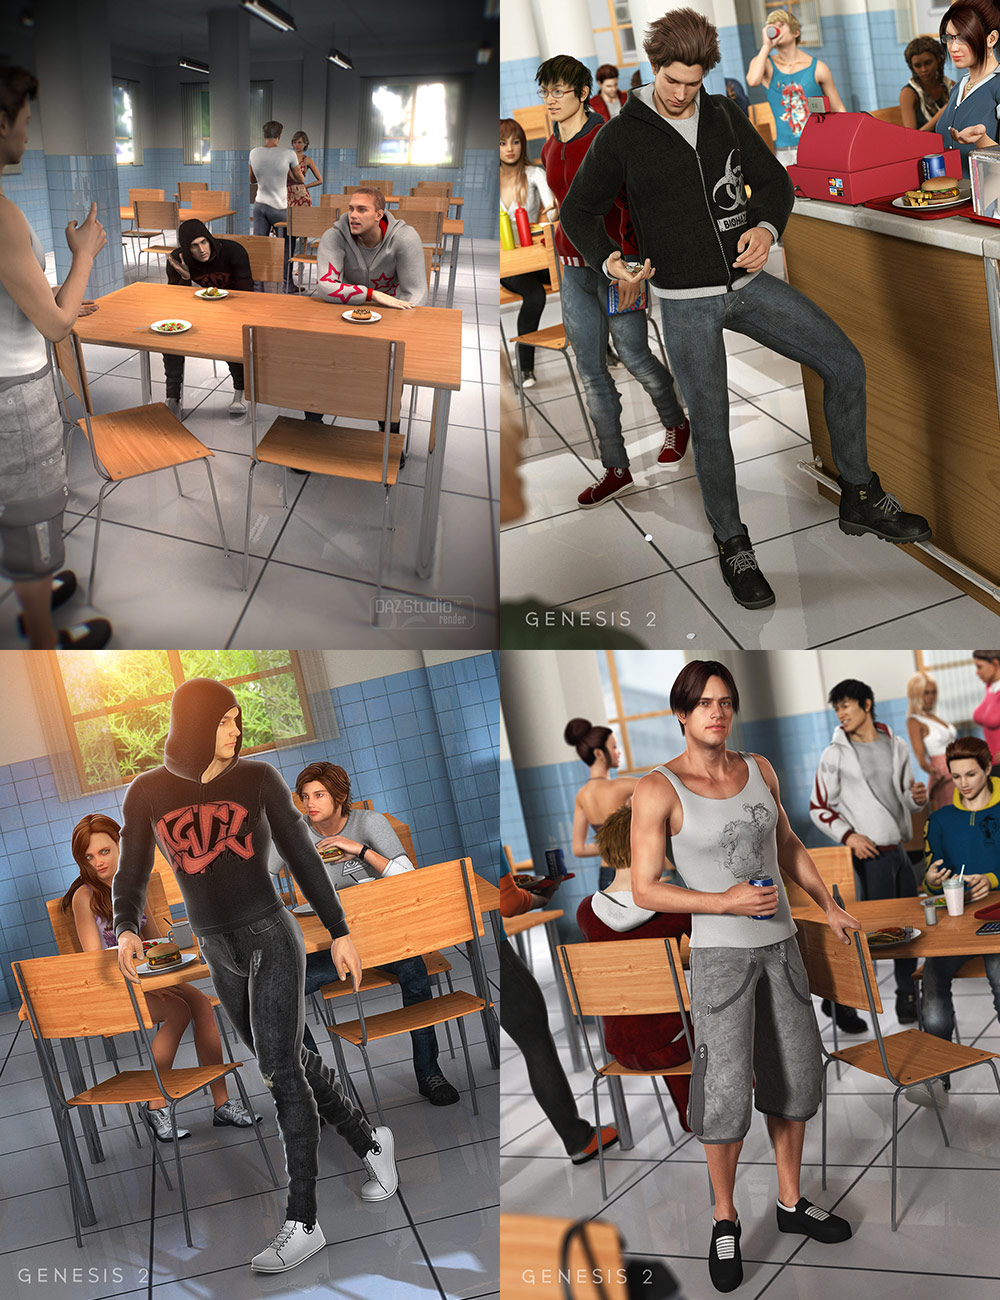 Truancy Bundle by: , 3D Models by Daz 3D